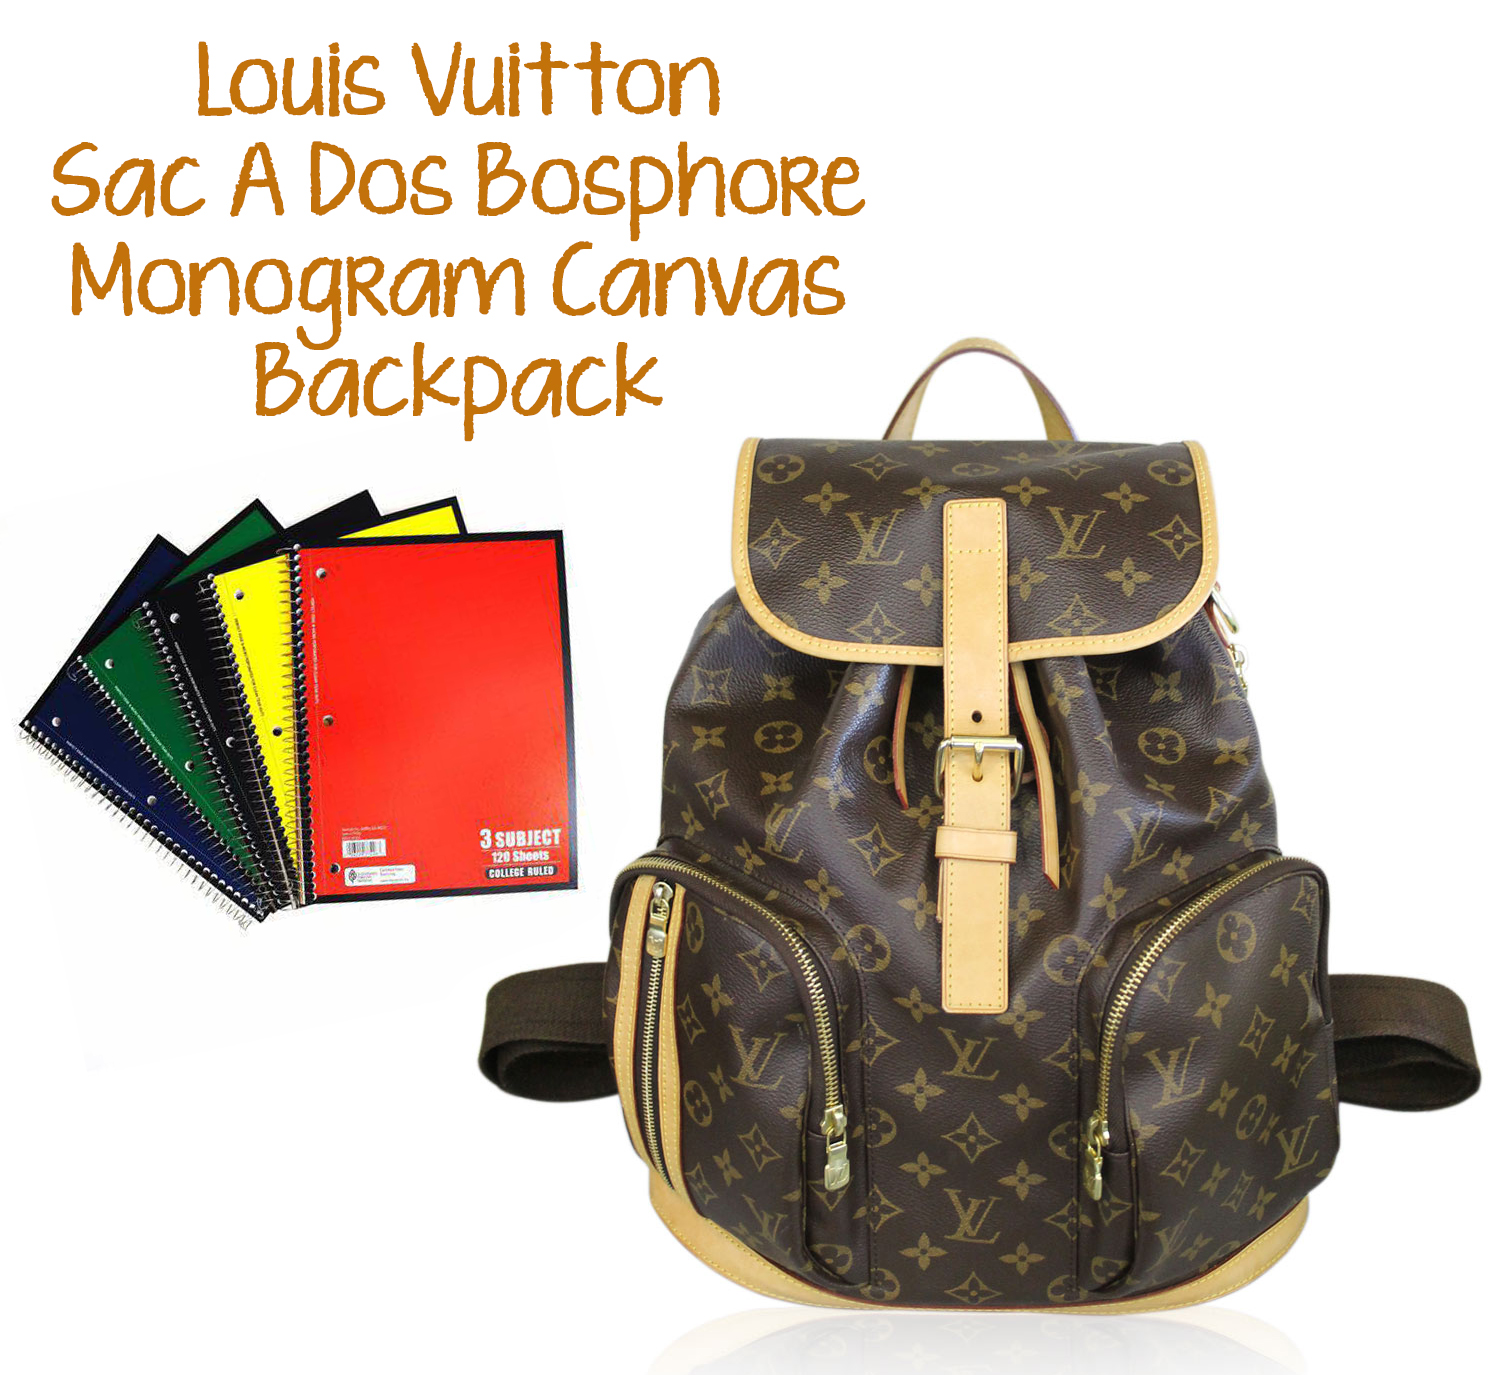 Louis Vuitton Canvas Bosphore Backpack